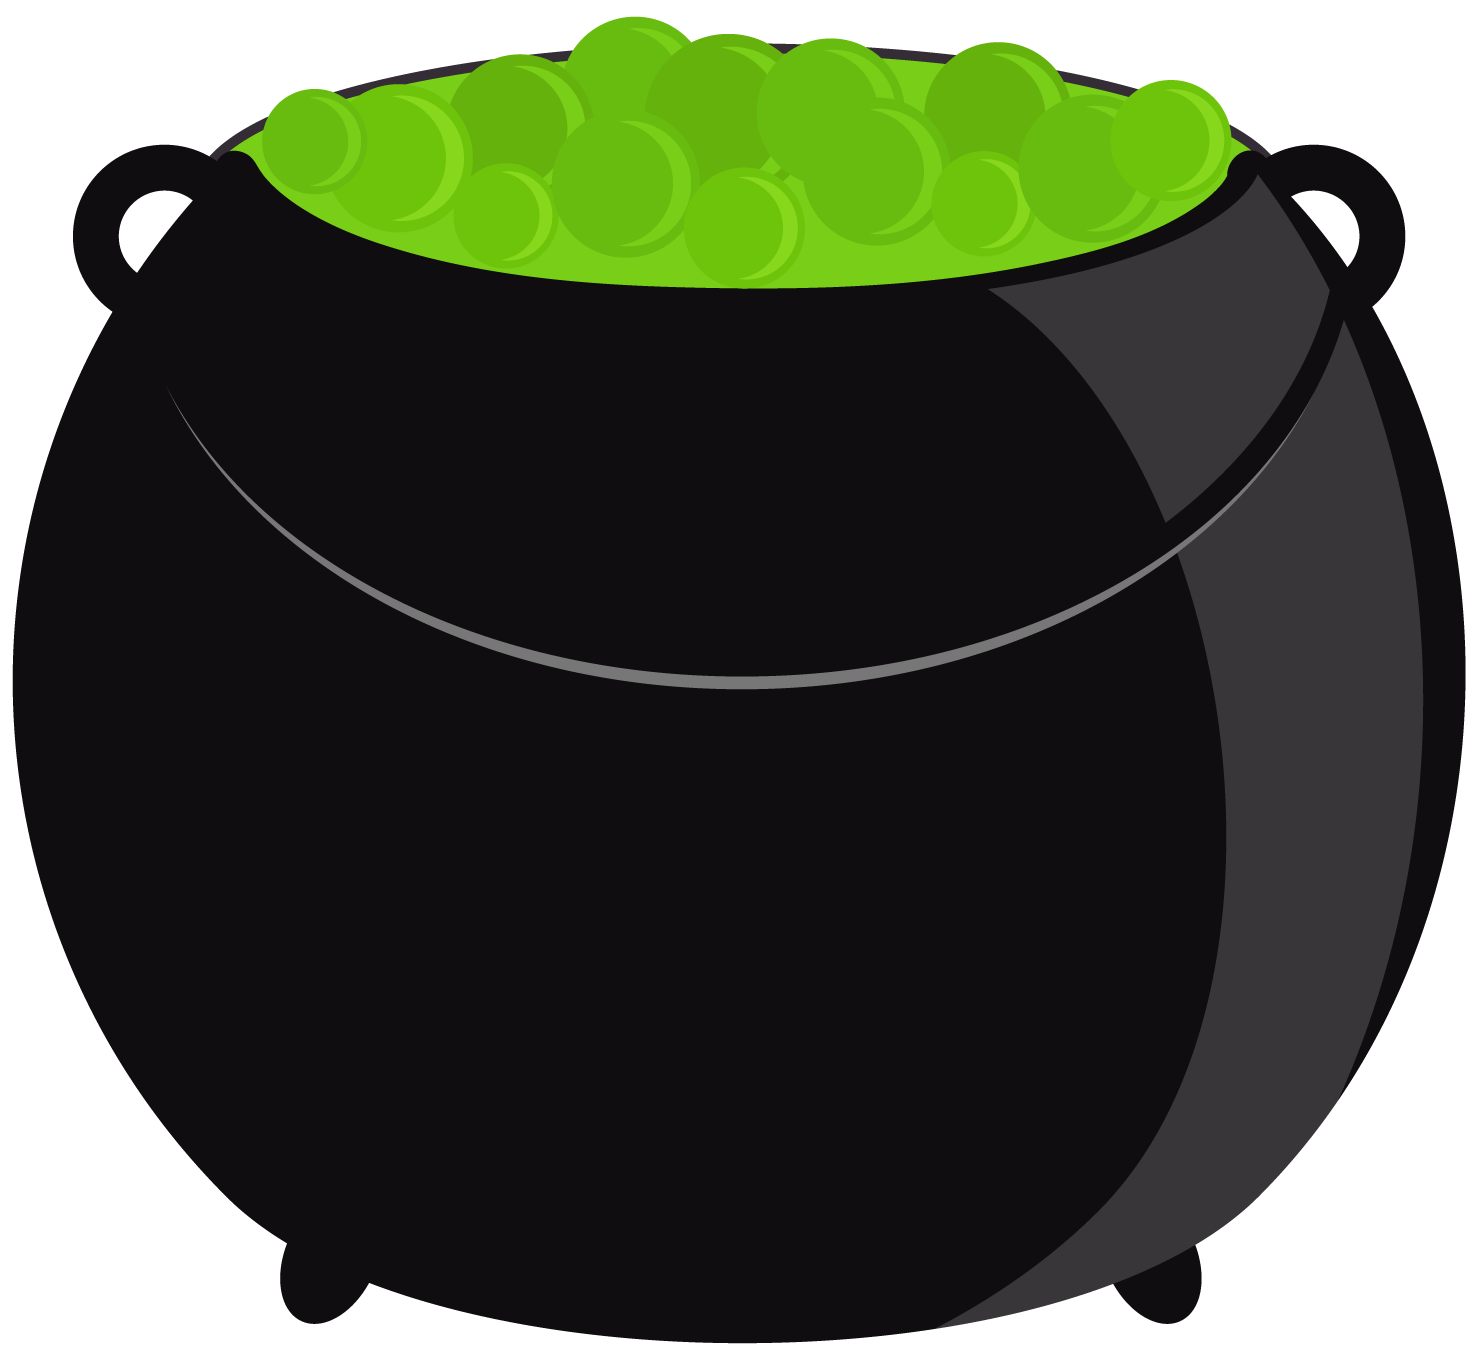 halloween cauldrons clipart oh my fiesta  in english cute witch clip art templates cute witch clipart free